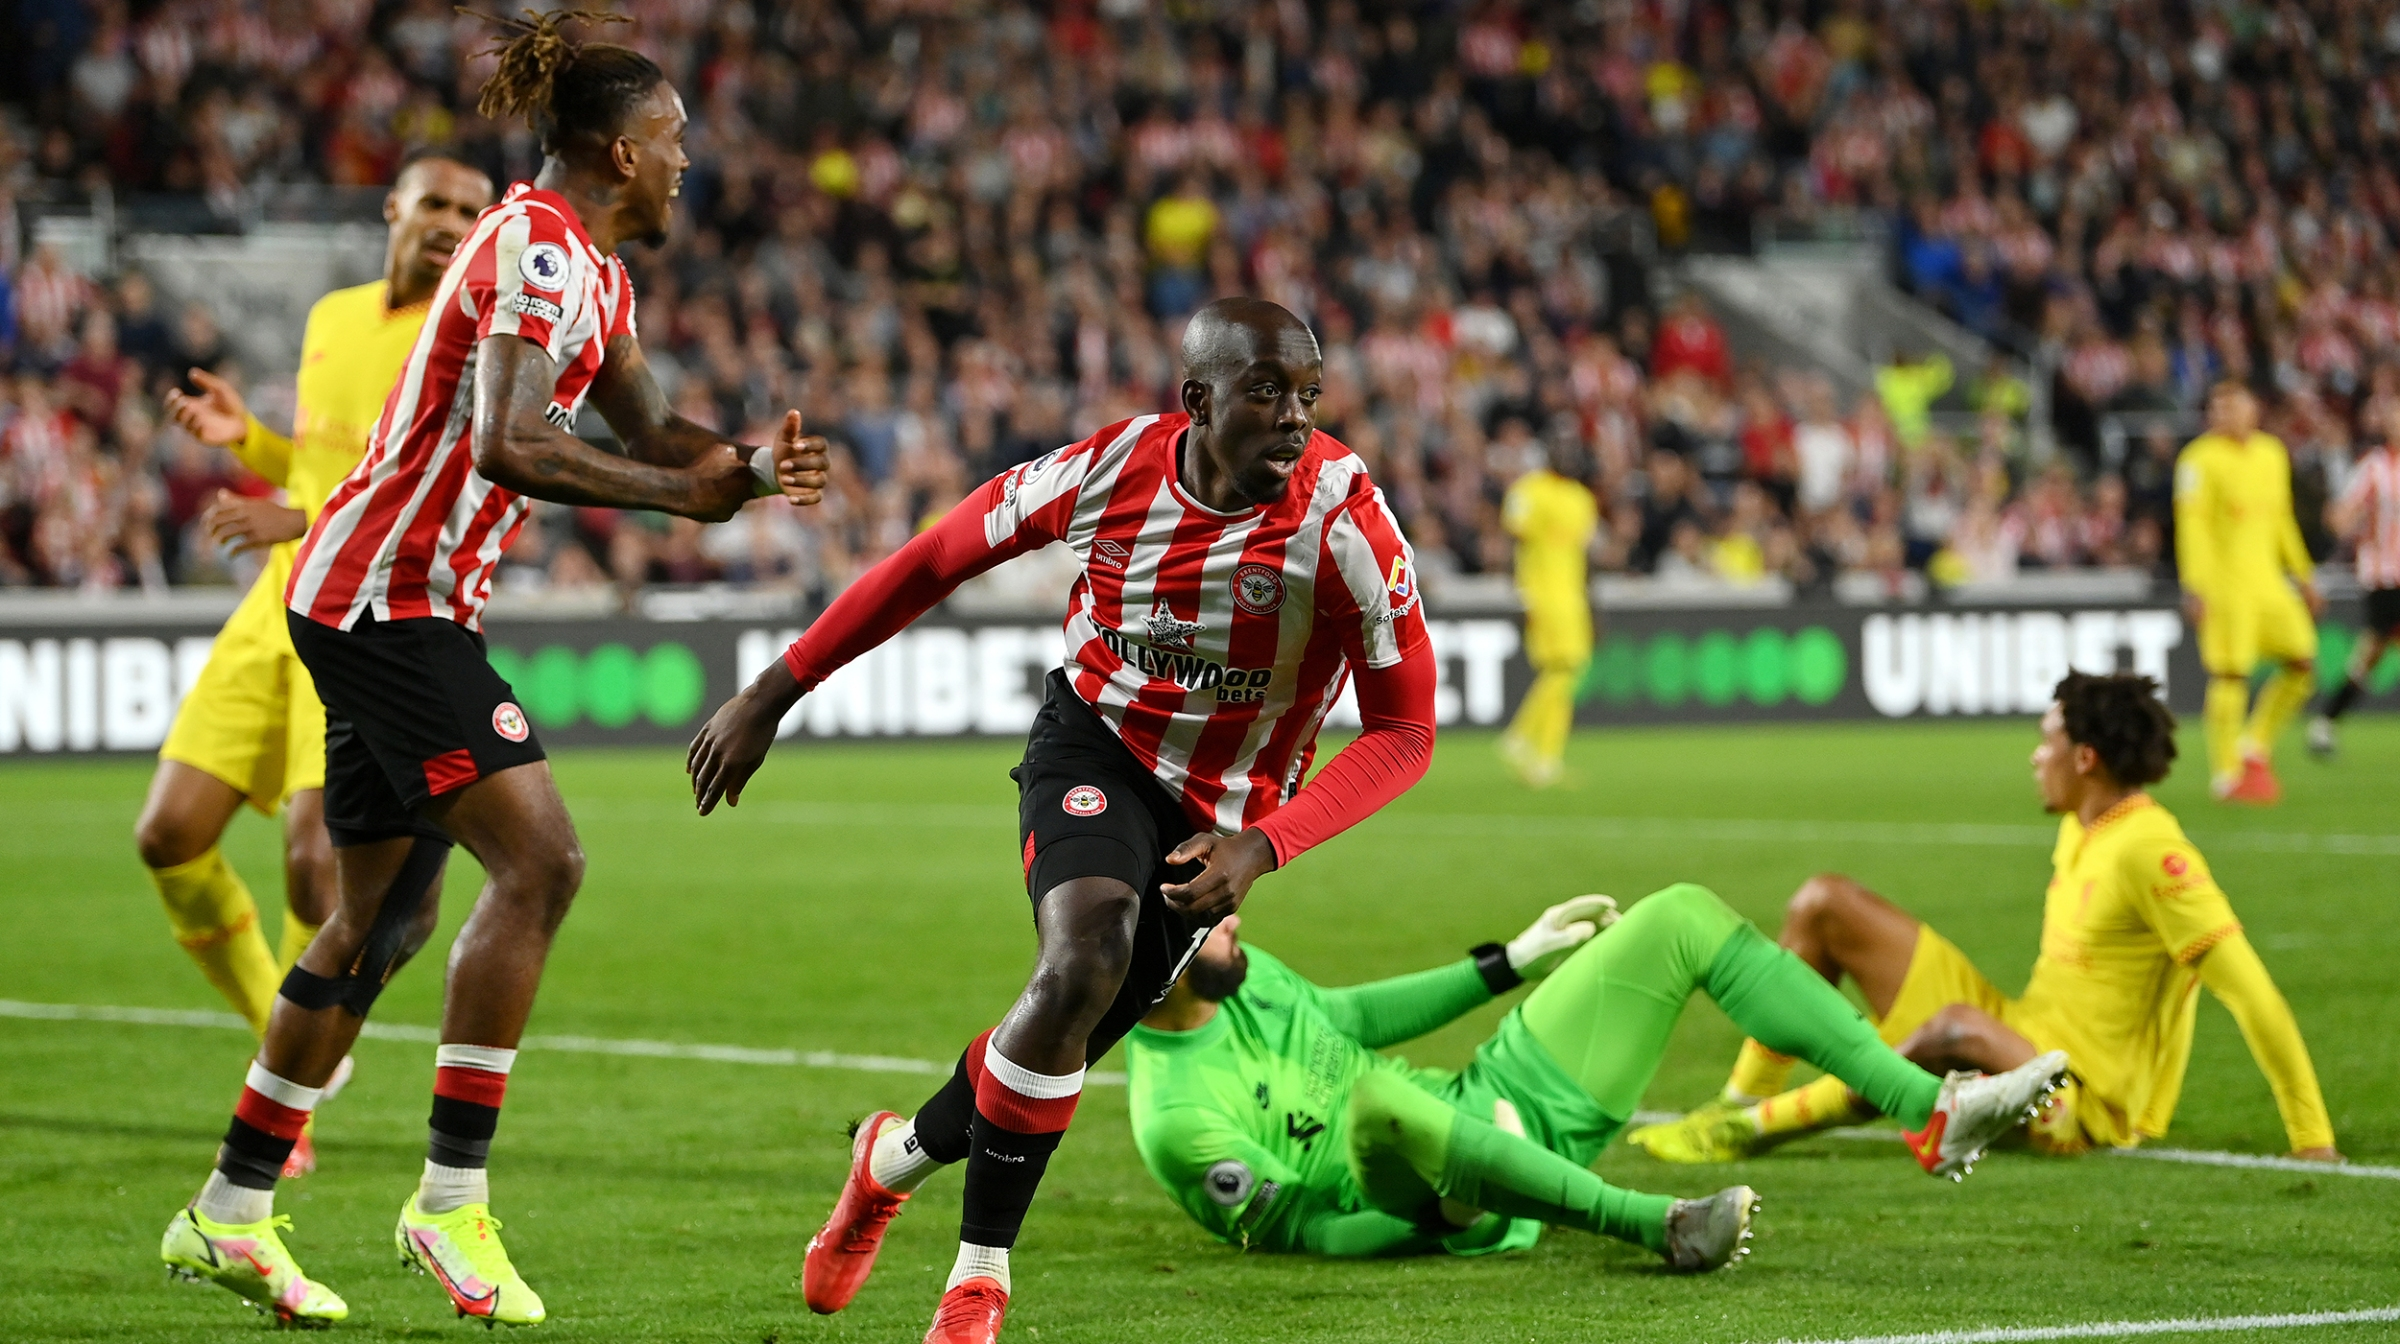 Yoane Wissa of Brentford celebrates scoring his sides third goal during the Premier League match between Brentford and Liverpool at Brentford Community Stadium on September 25, 2021 in Brentford, England.